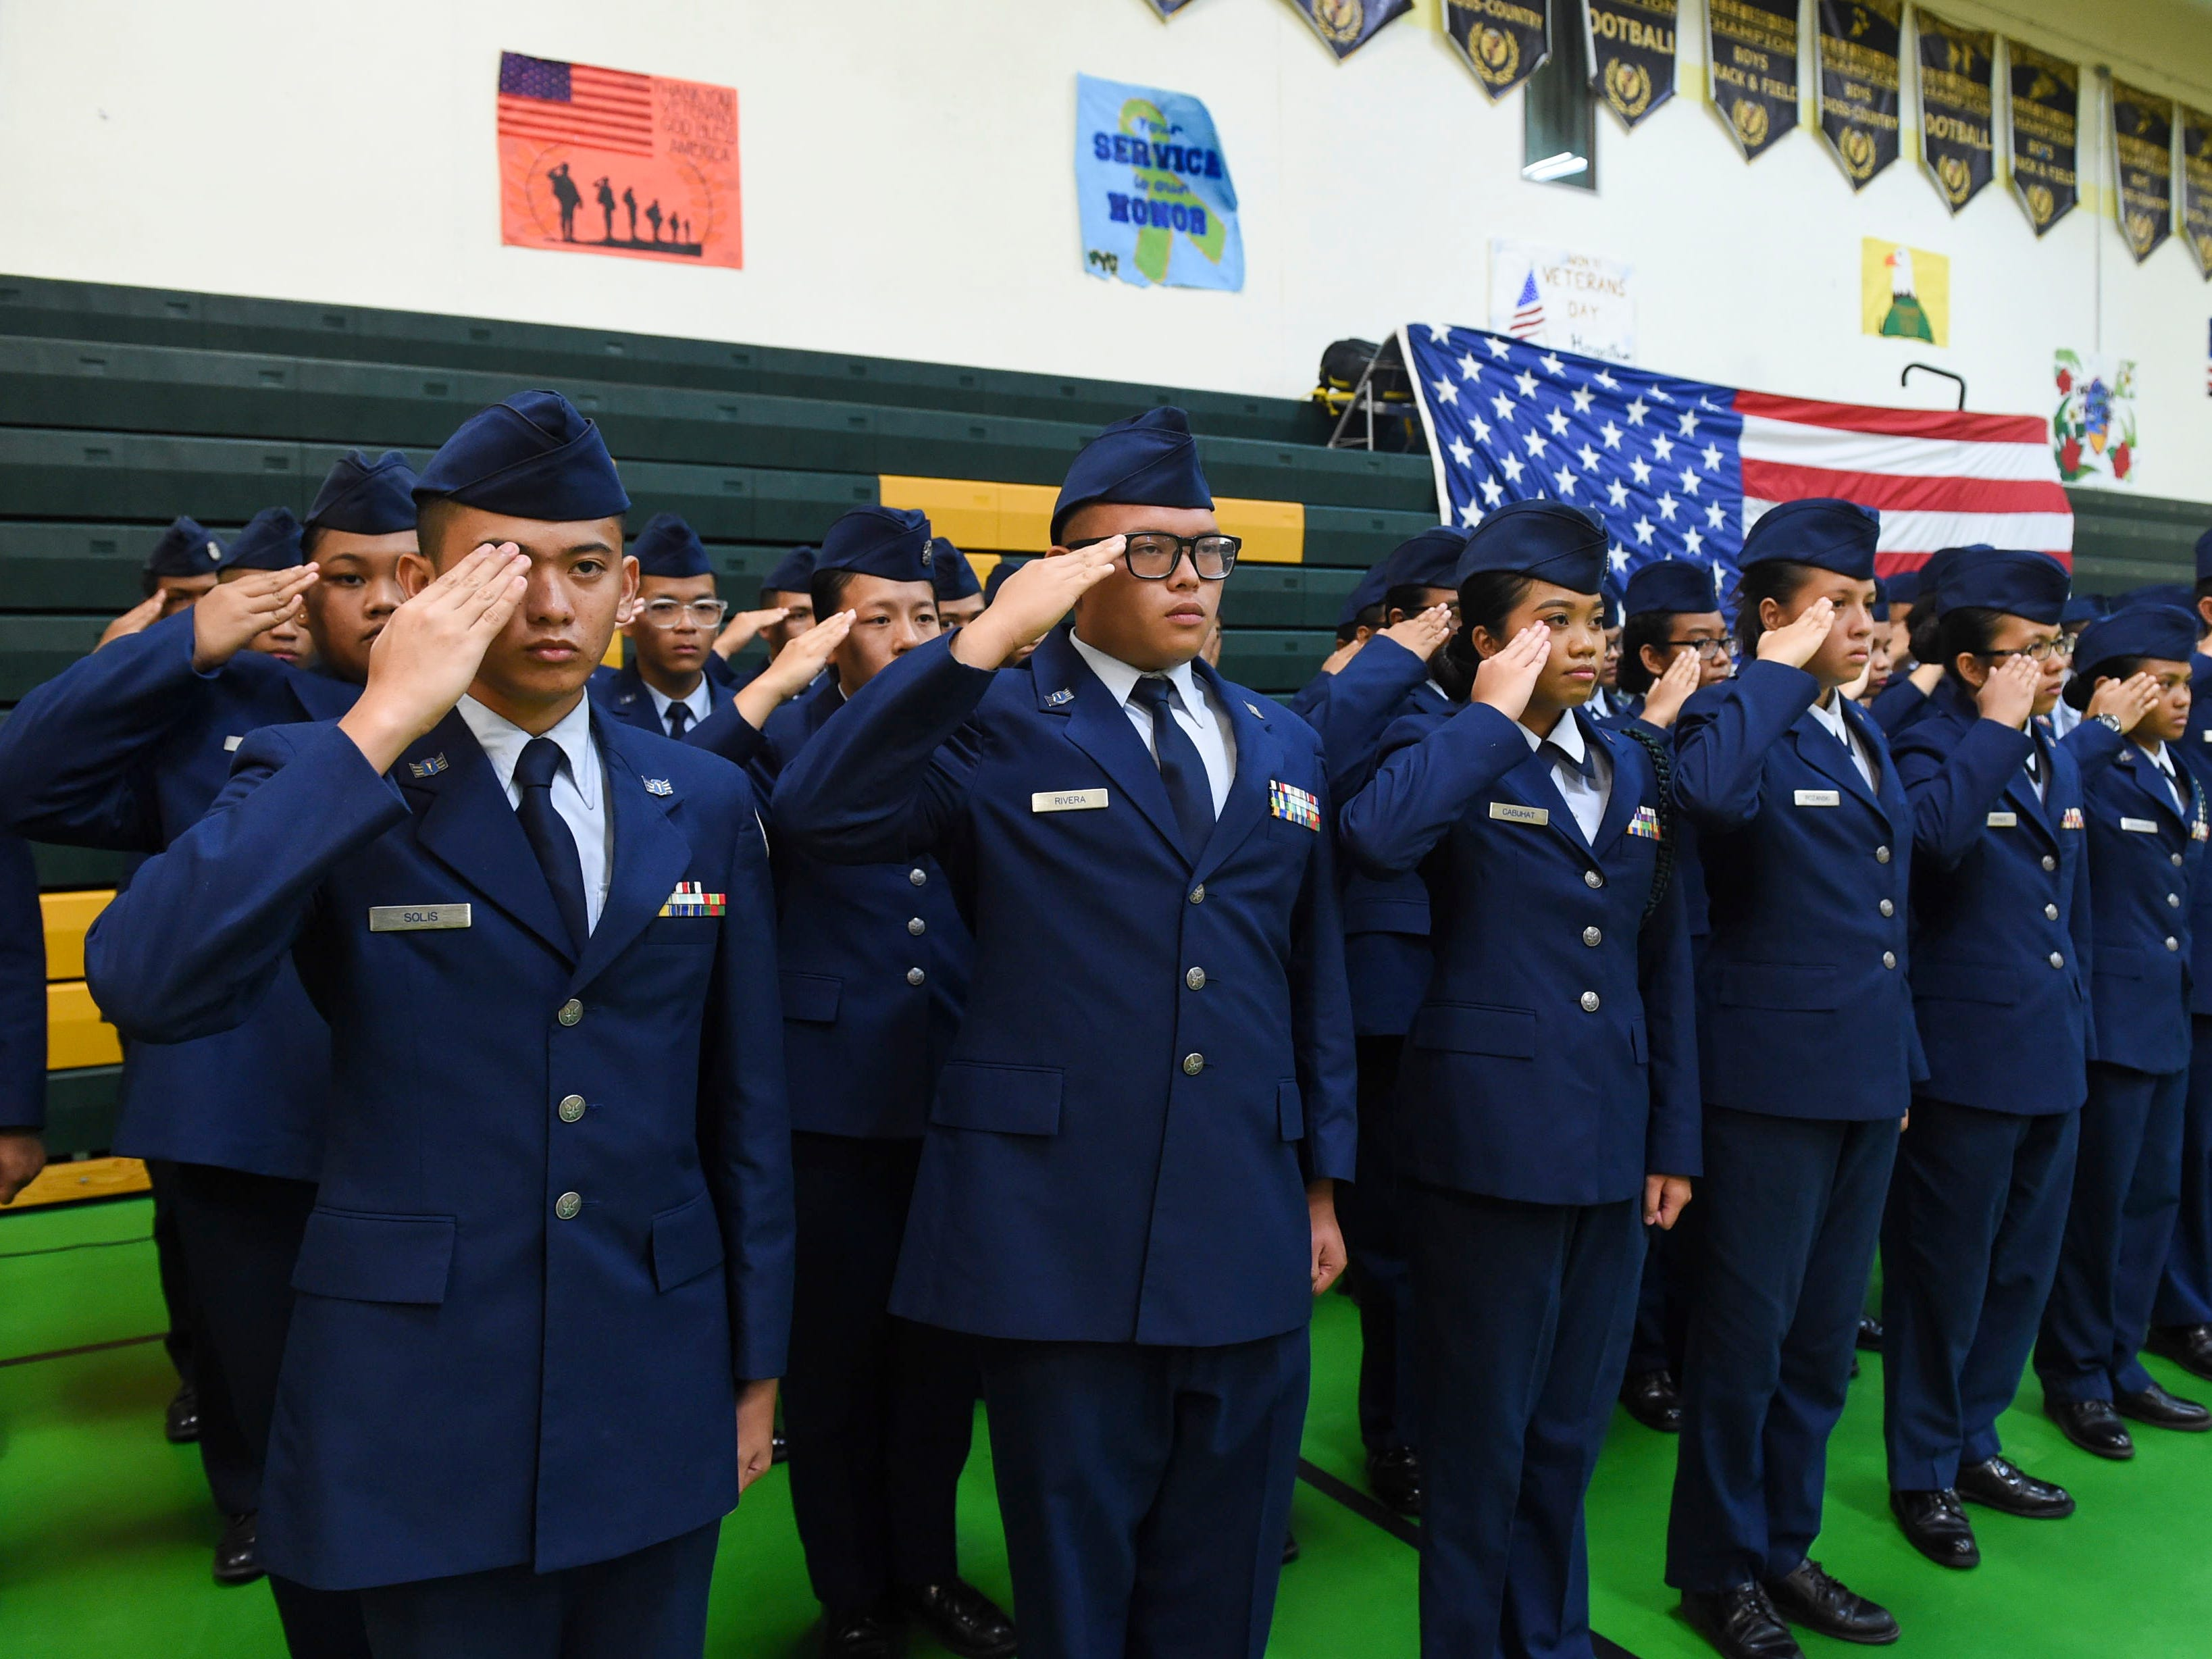 The John F. Kennedy High School Air Force Junior ROTC team stands at attention during the JFK High School Veterans Recognition Ceremony, Nov. 9, 2018.